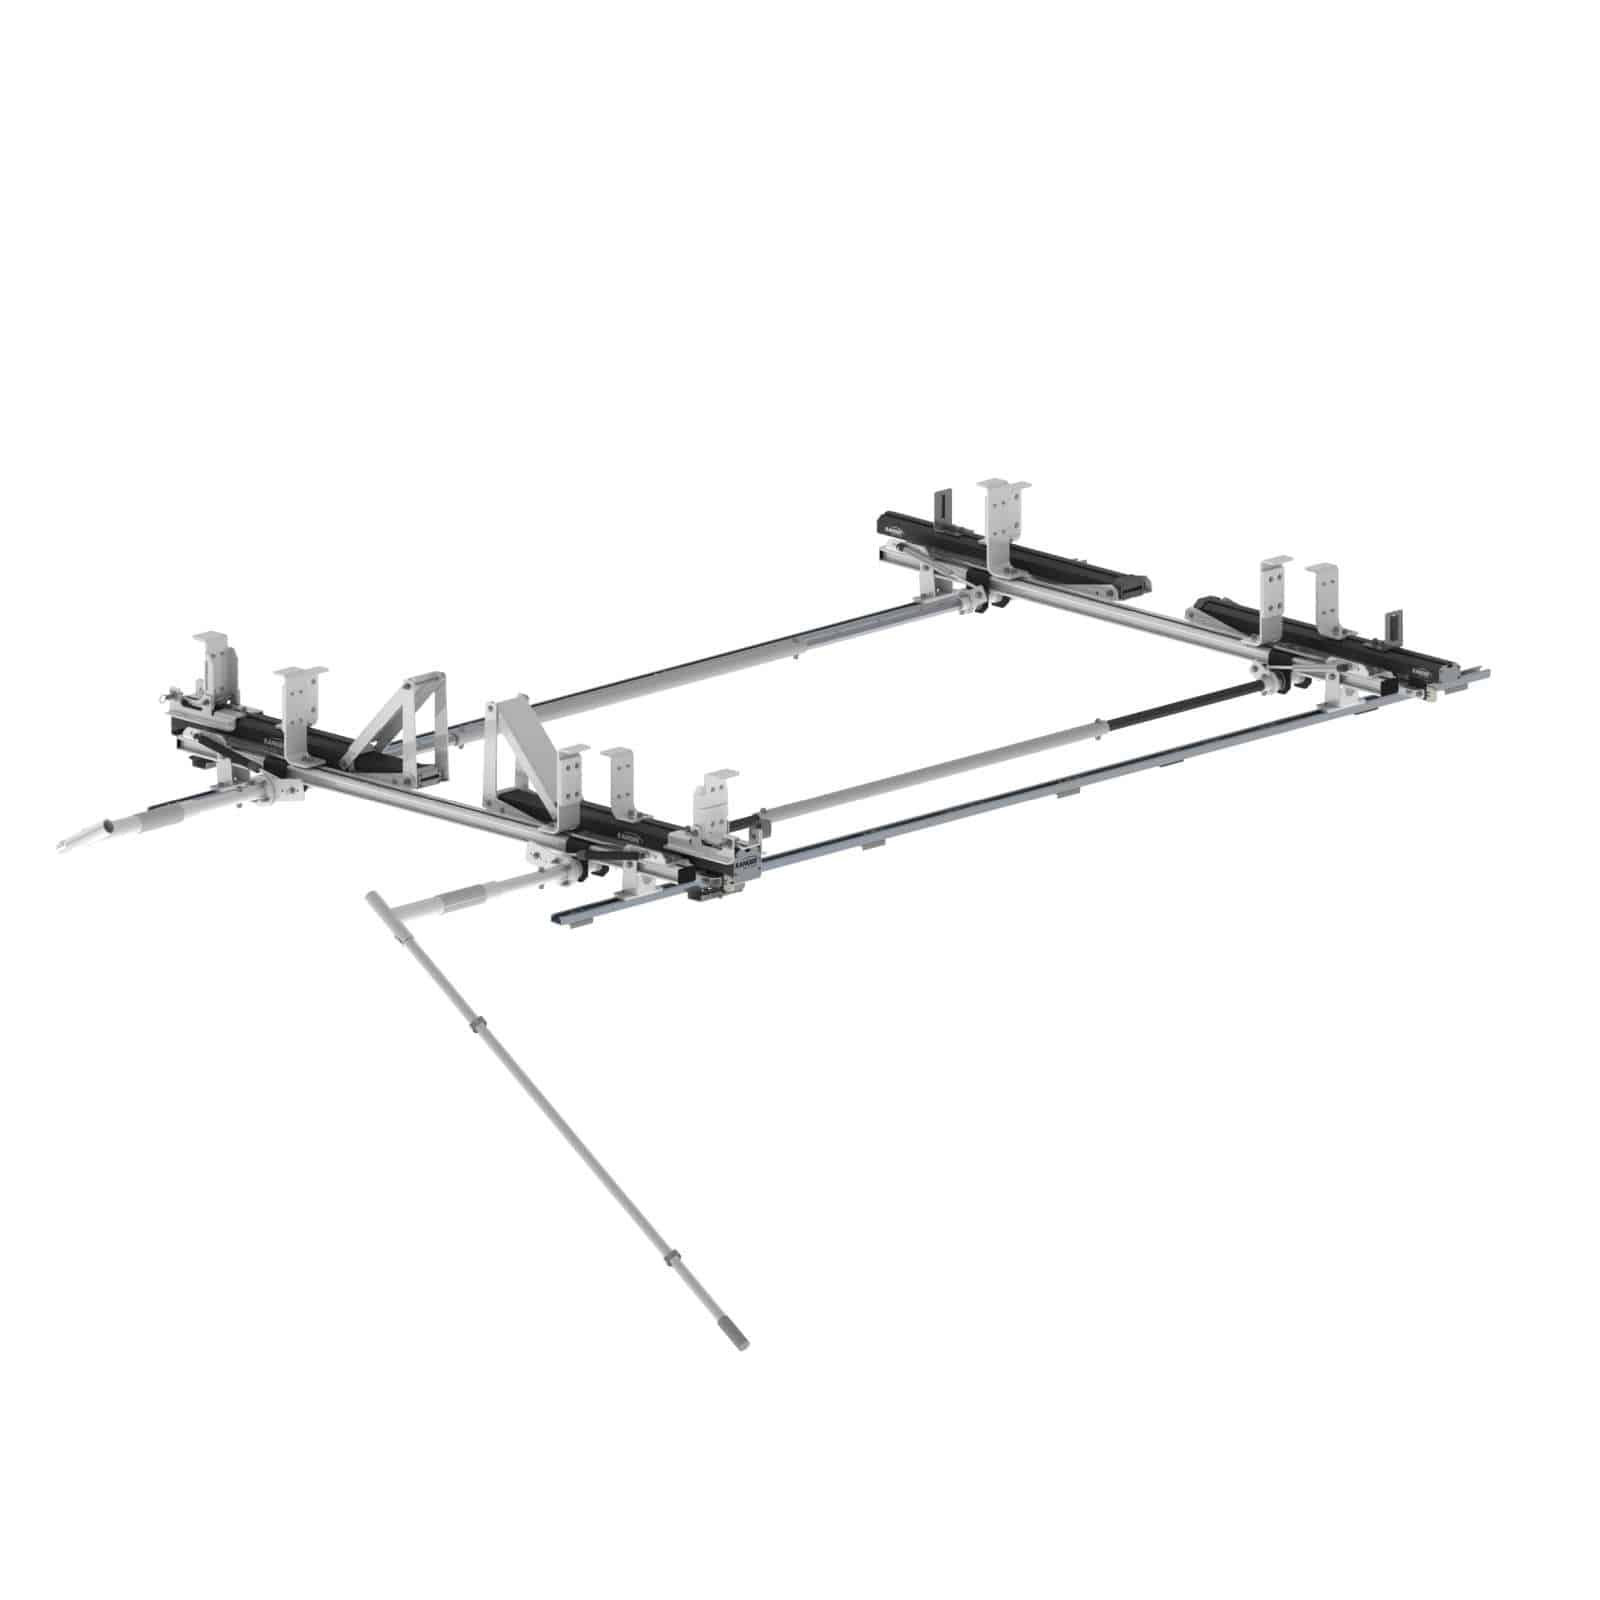 Max Rack 2 0 Drop Down Ladder Rack Double Side Ram